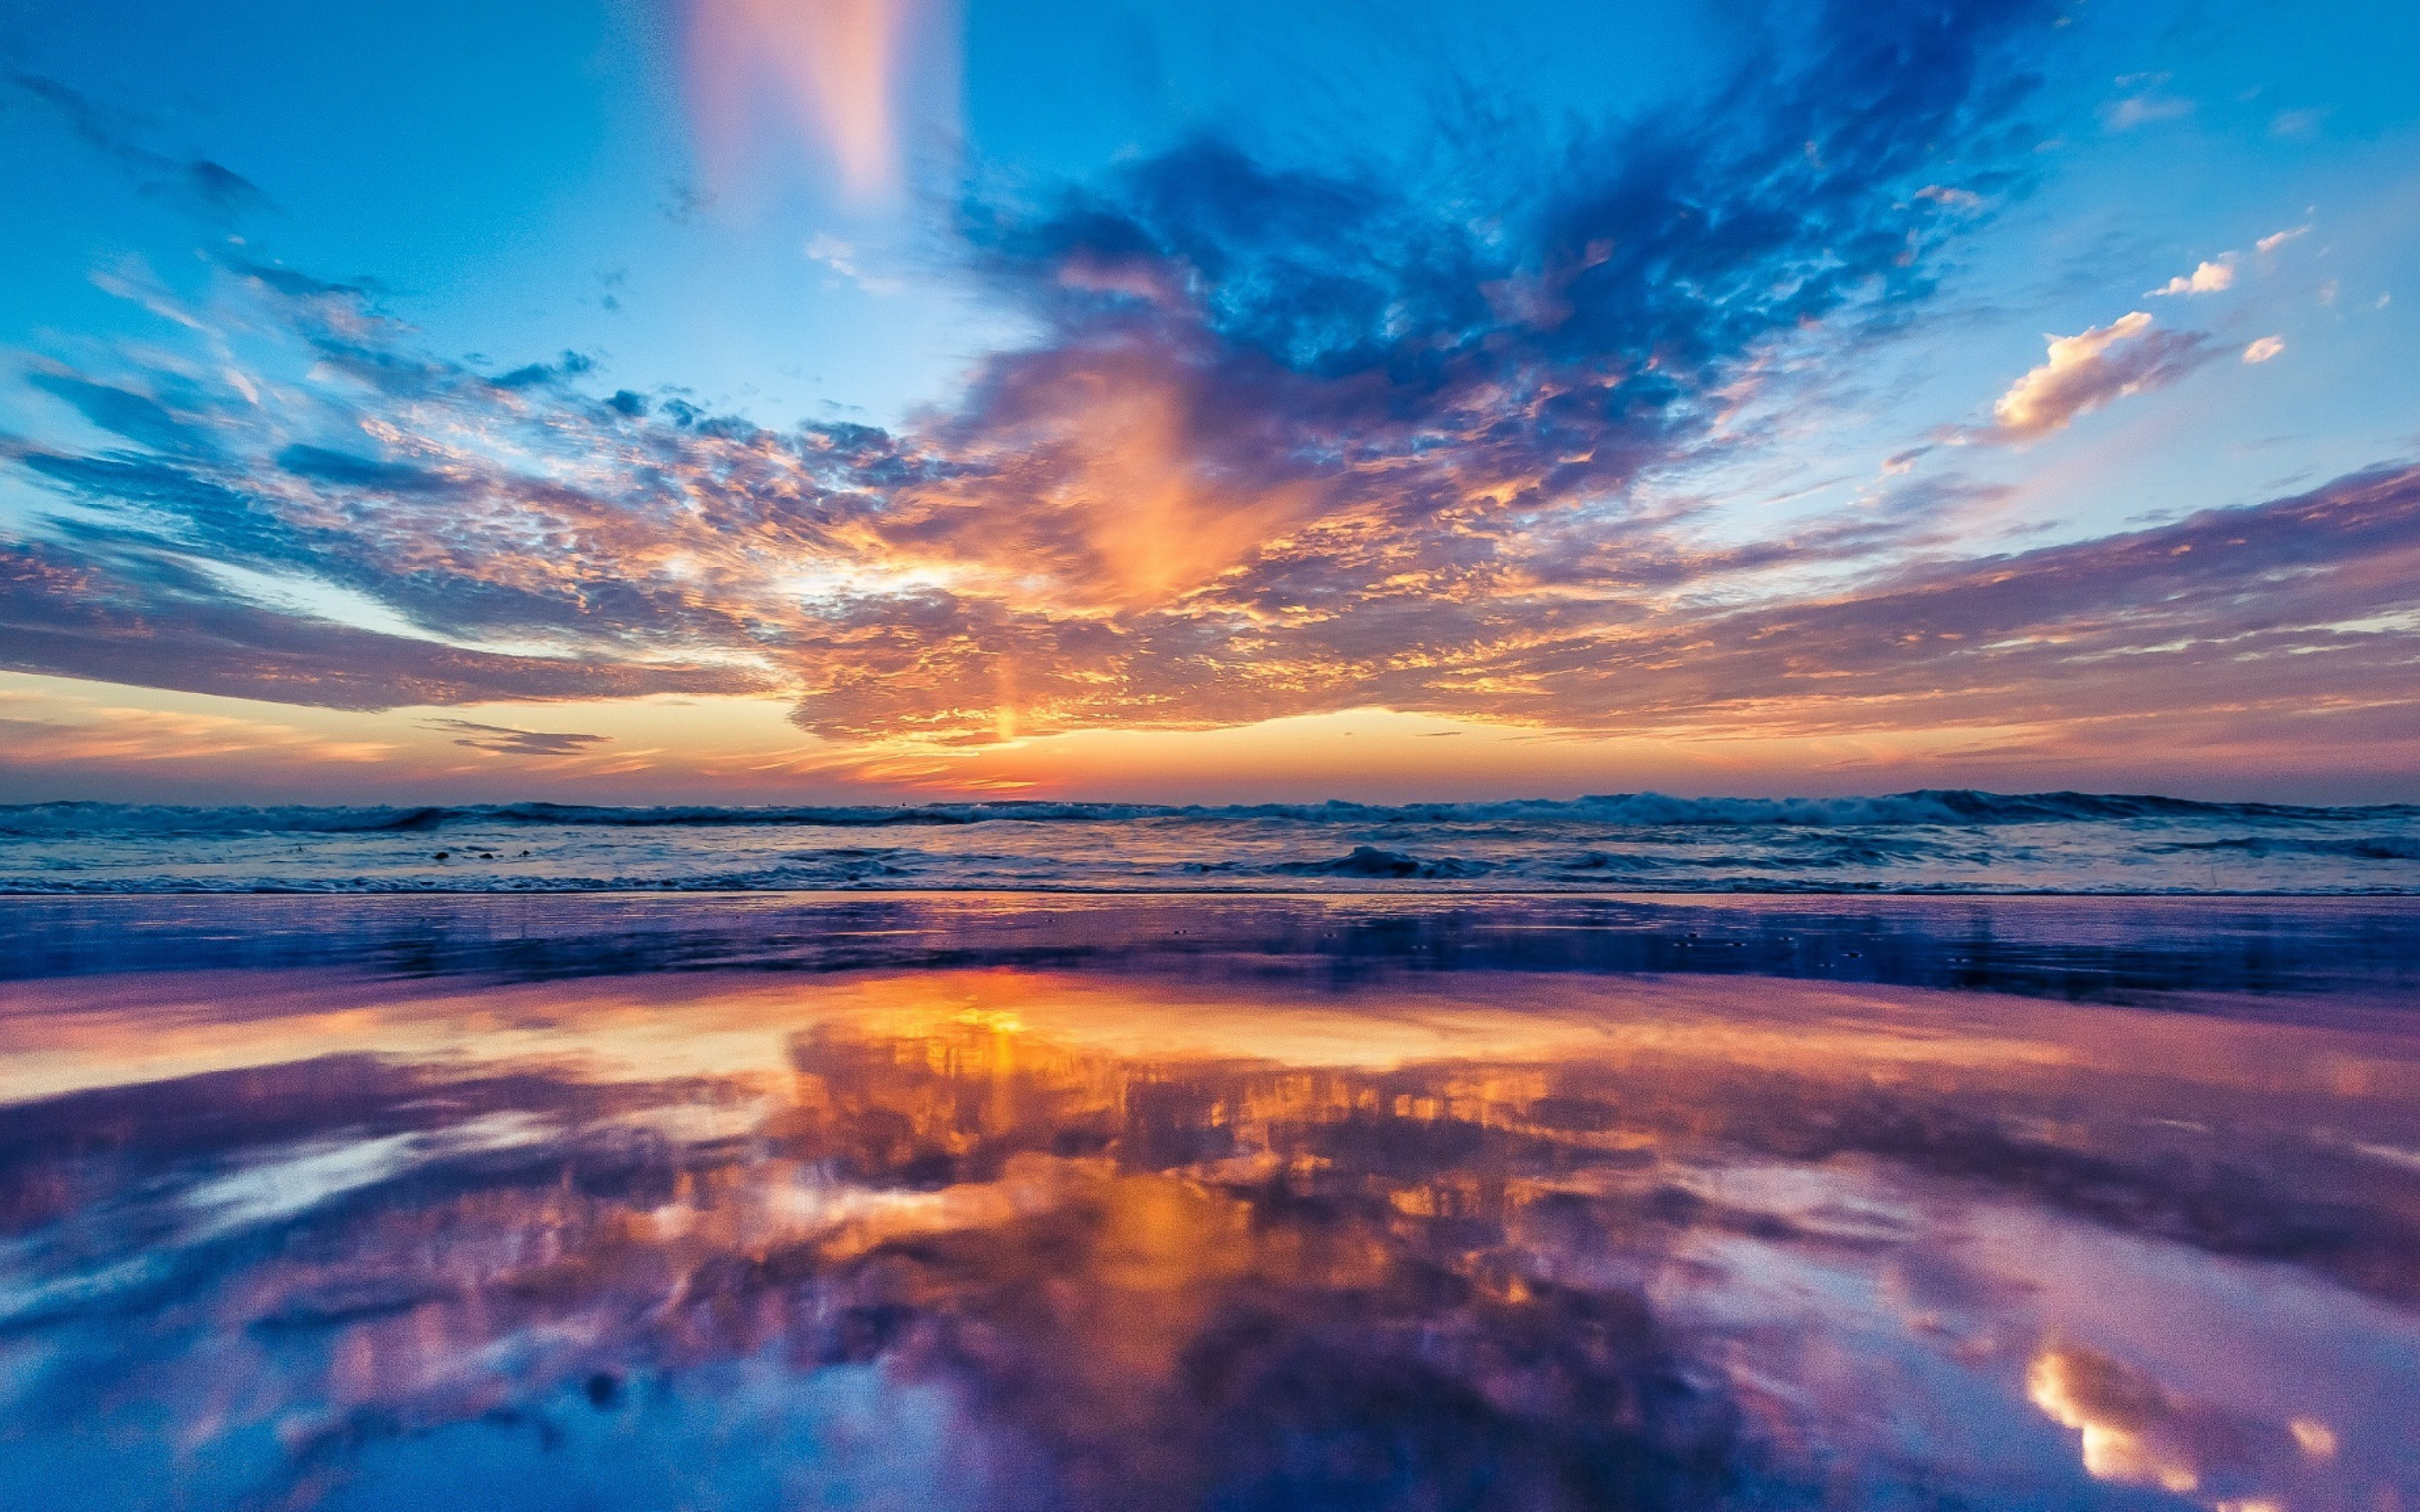 Wallpaper Sky at sunset reflected in the sea